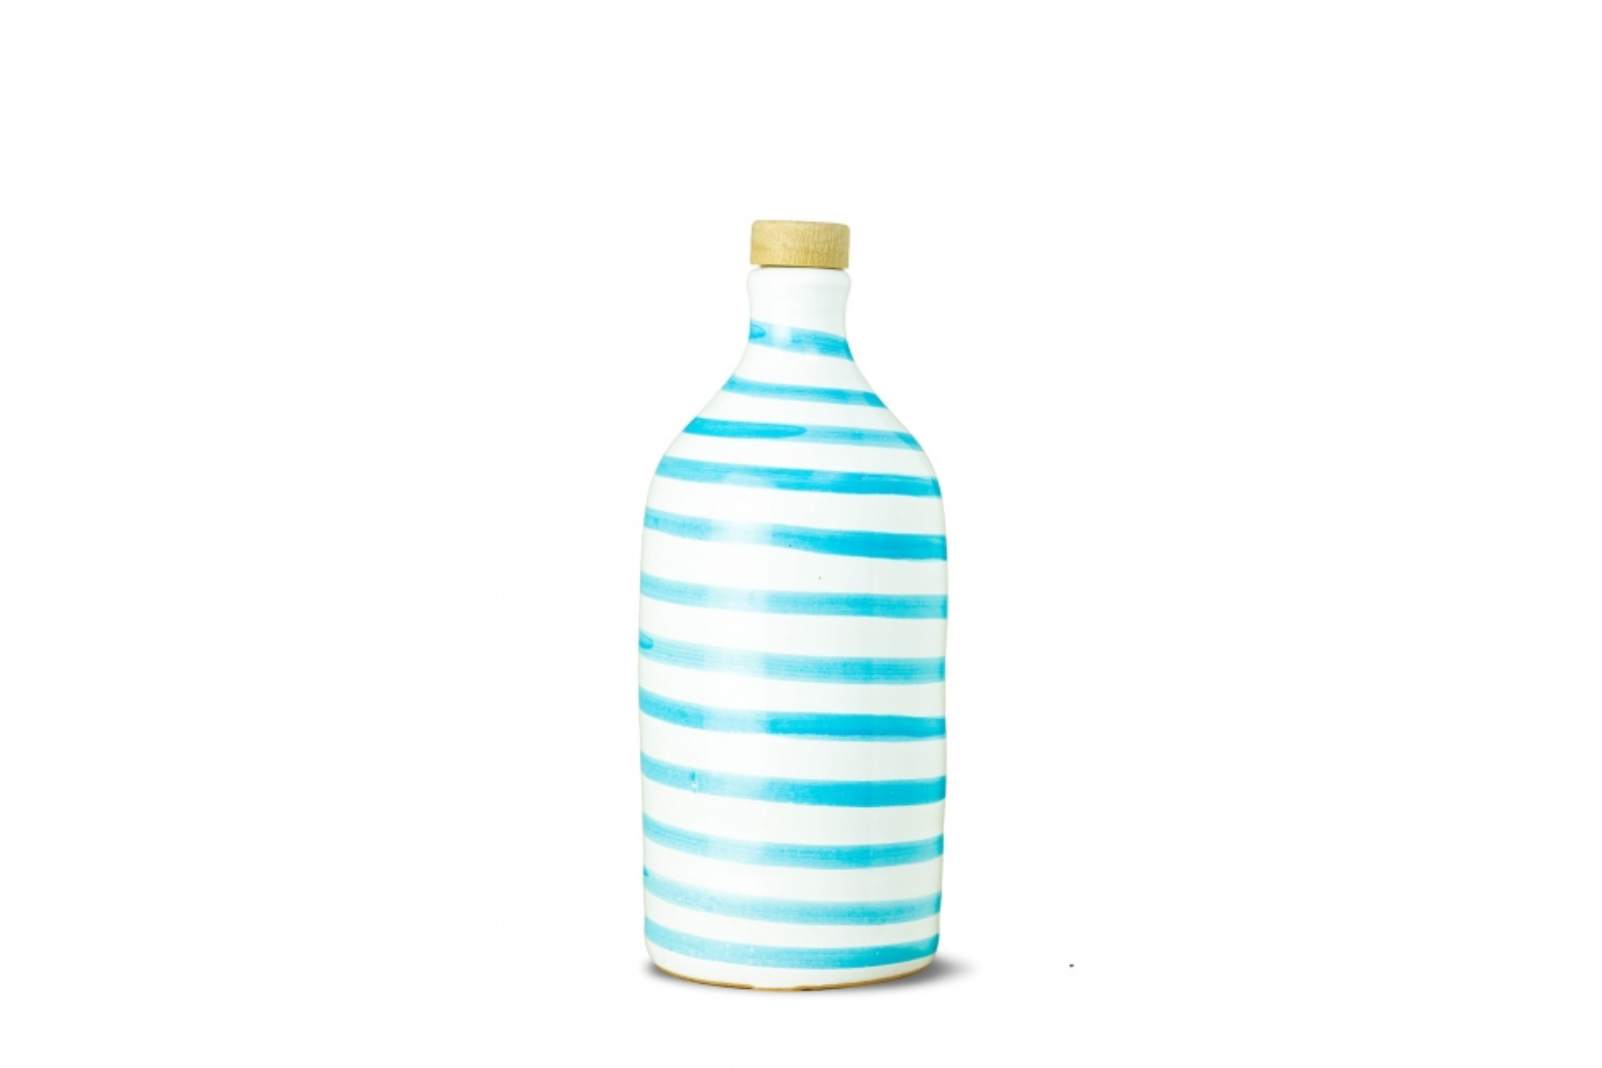 Limited Edition Extra Virgin Olive Oil - Blue Capri Ceramic Bottle (Intense) 500ml